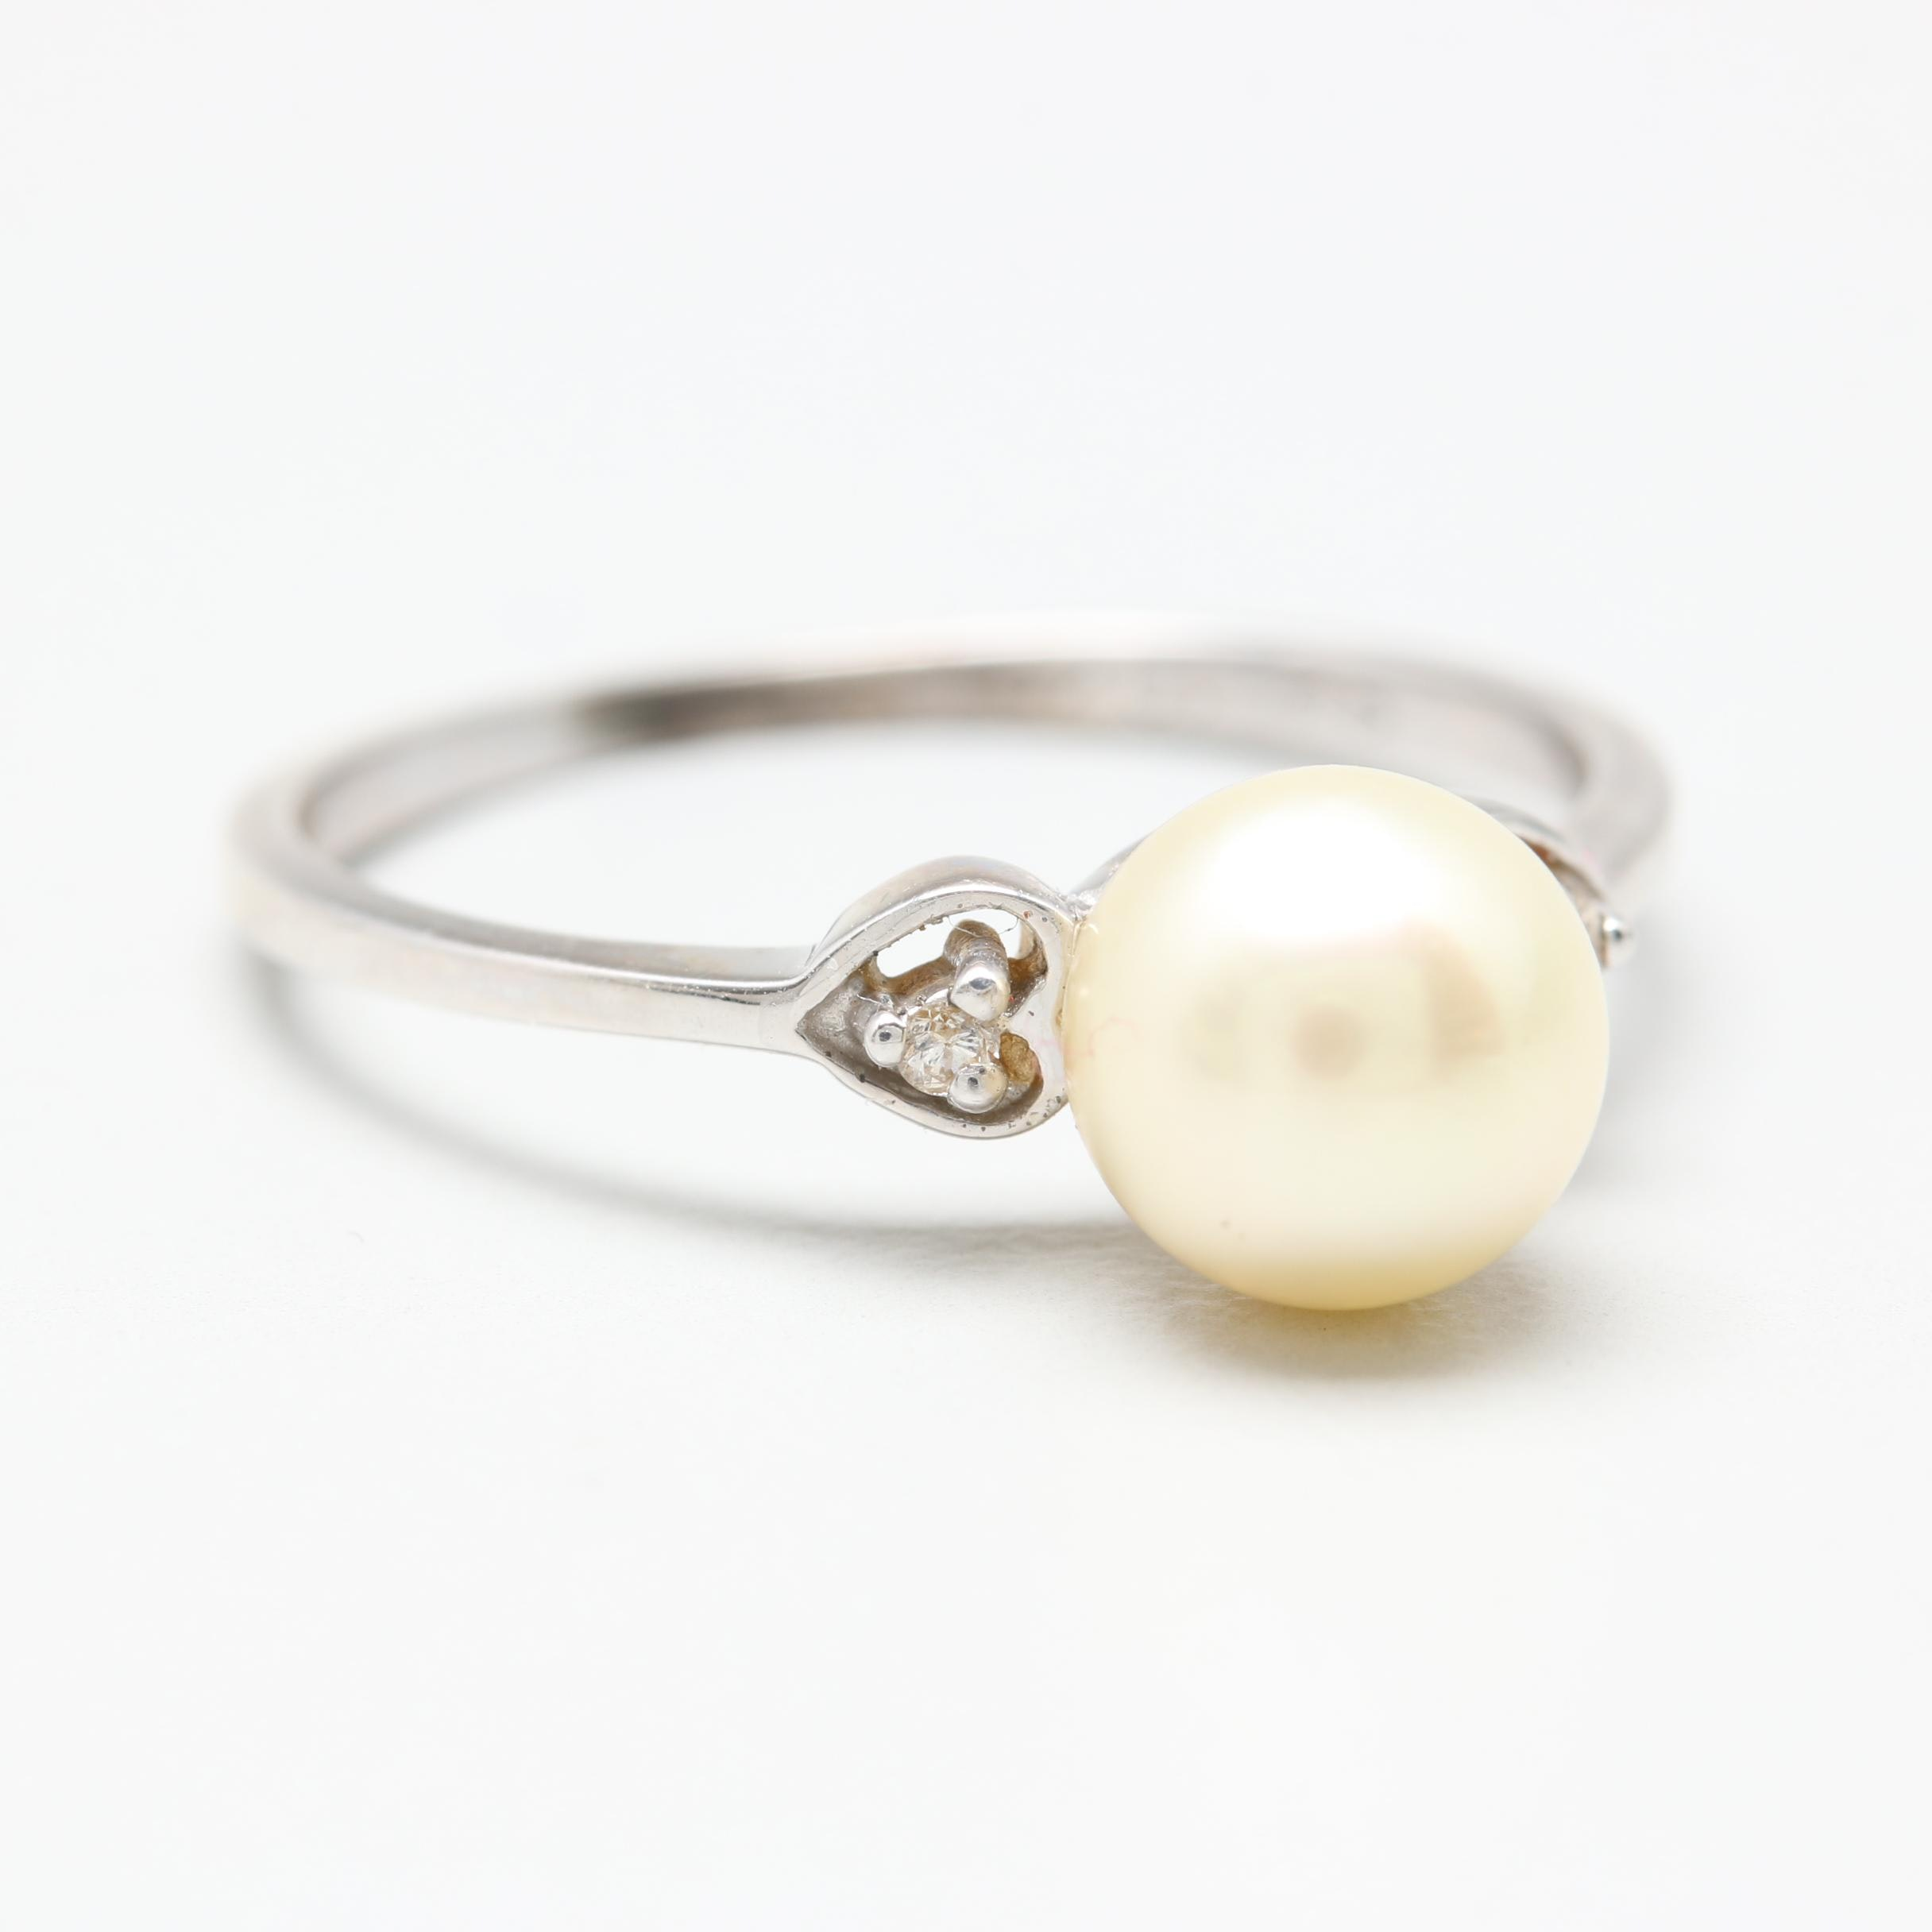 10K White Gold Cultured Pearl and Diamond Ring